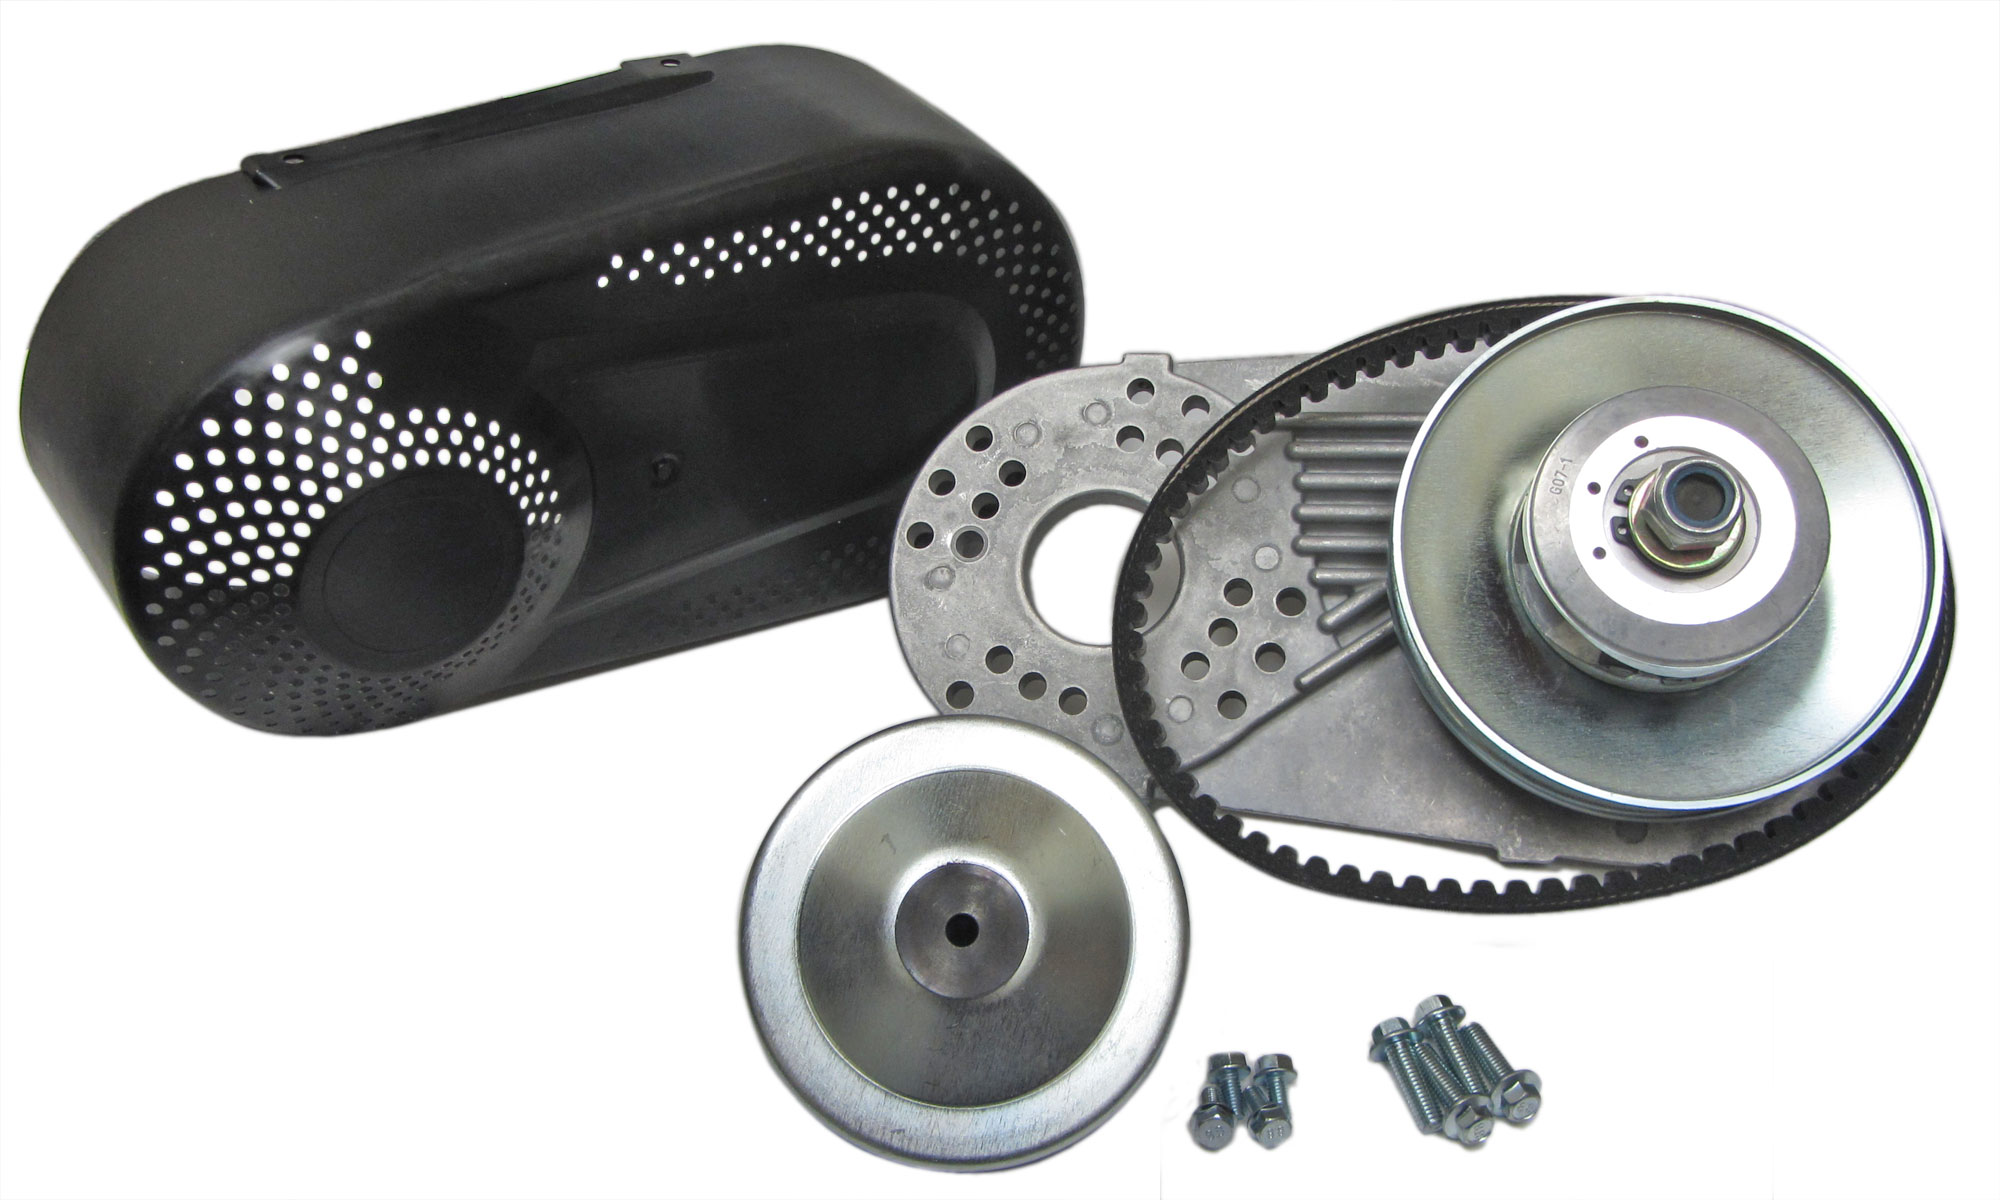 Torque Converter for #41 Chain, 1